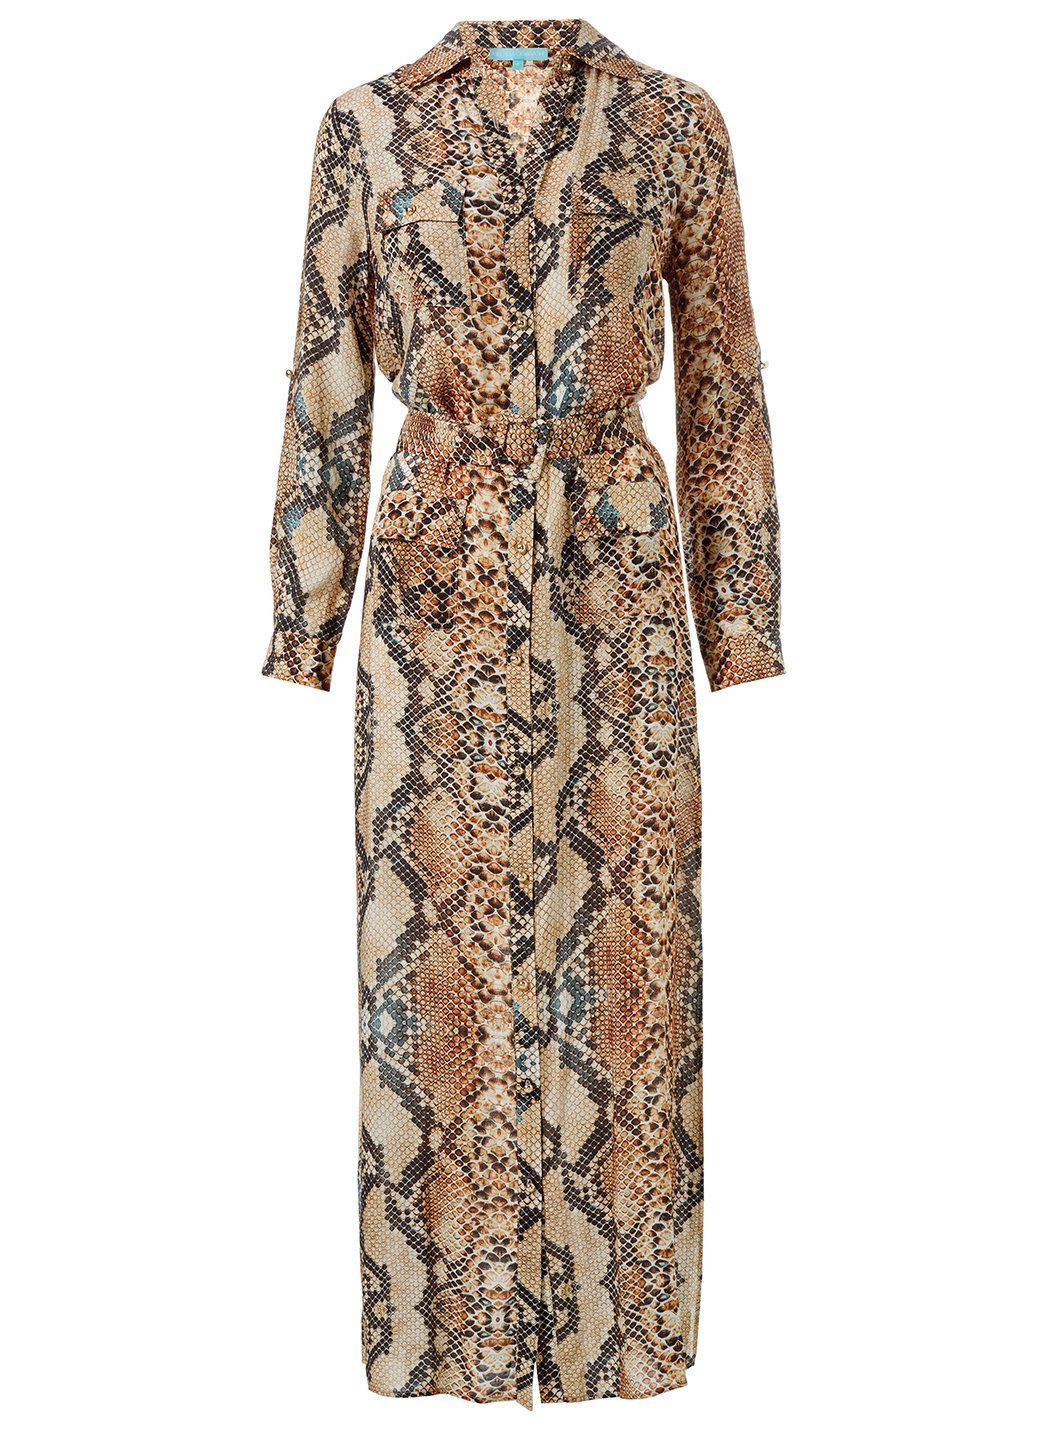 Peggy Snake Print Dress Cutout